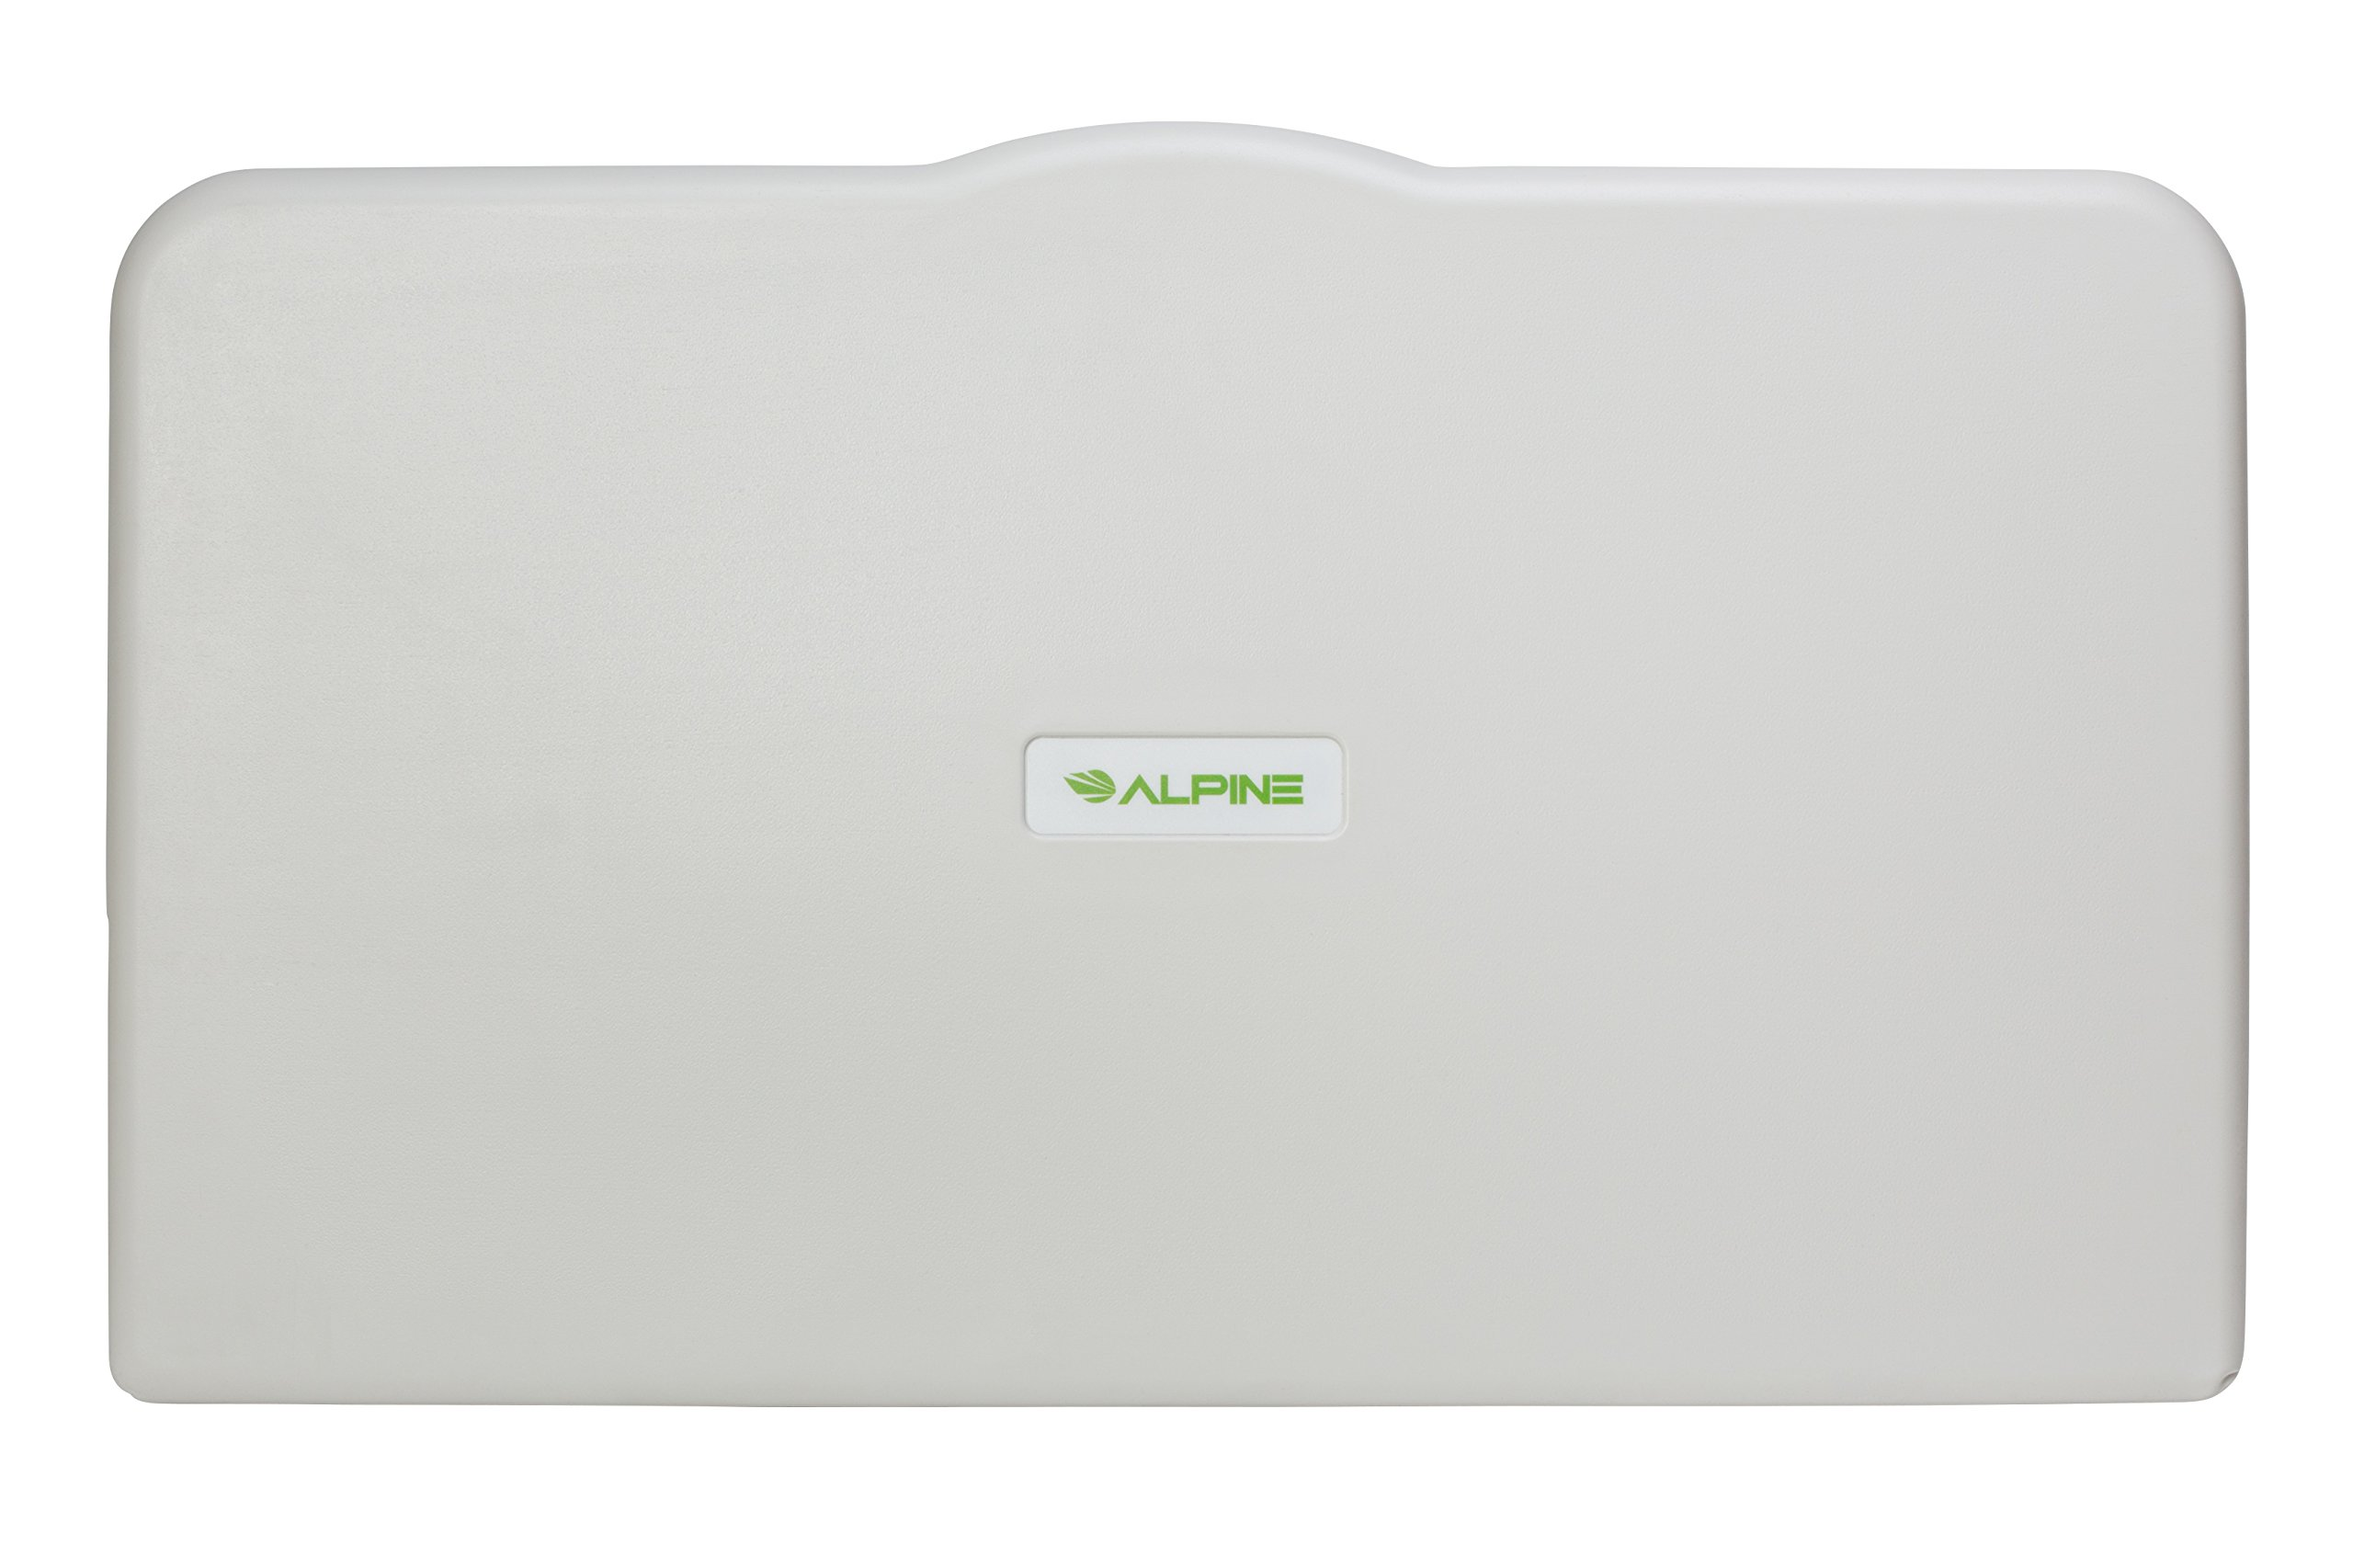 Alpine Industries Fold Down Baby Changing Diaper Station - Horizontal Wall Mounted, Supports up to 220 Lbs. - Safety Straps to Keep Baby Secured - Ideal for Commercial Restrooms (White Granite)